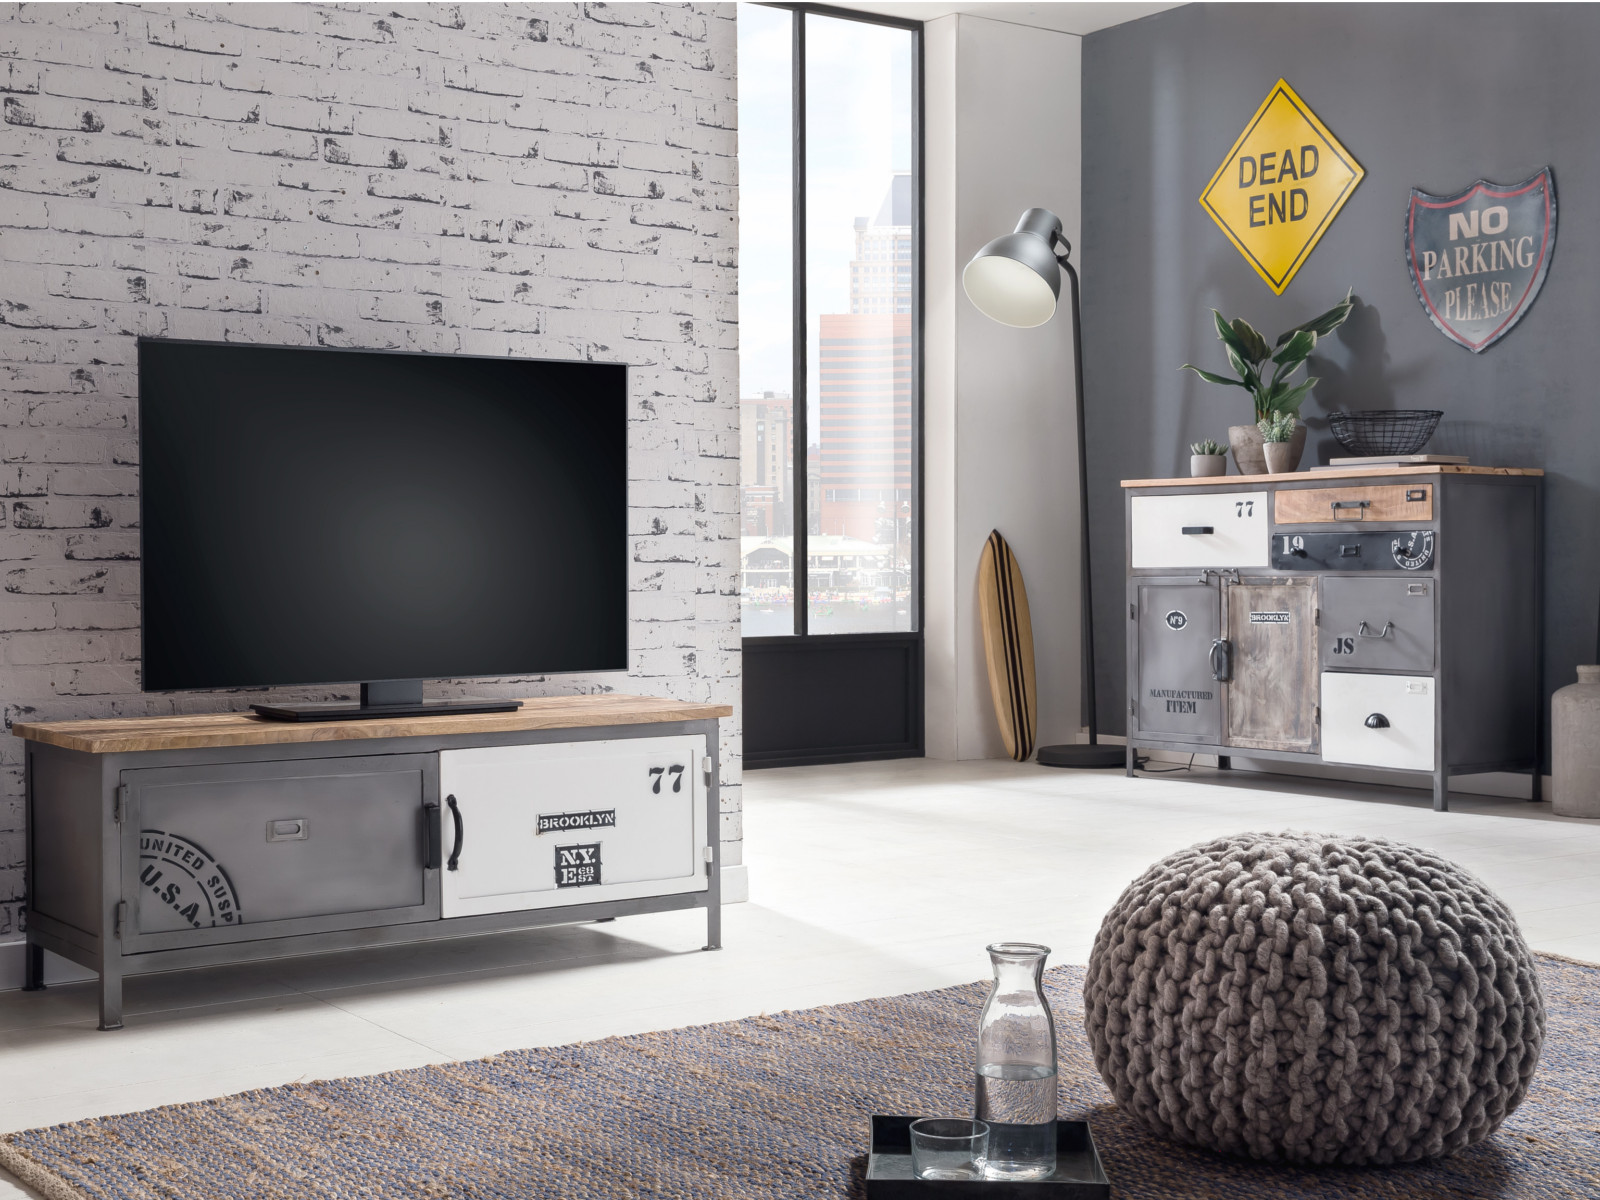 tv bank pinetown 2t rig grau metall industrial look tv m bel wohnzimmerm bel 4251342303915 ebay. Black Bedroom Furniture Sets. Home Design Ideas